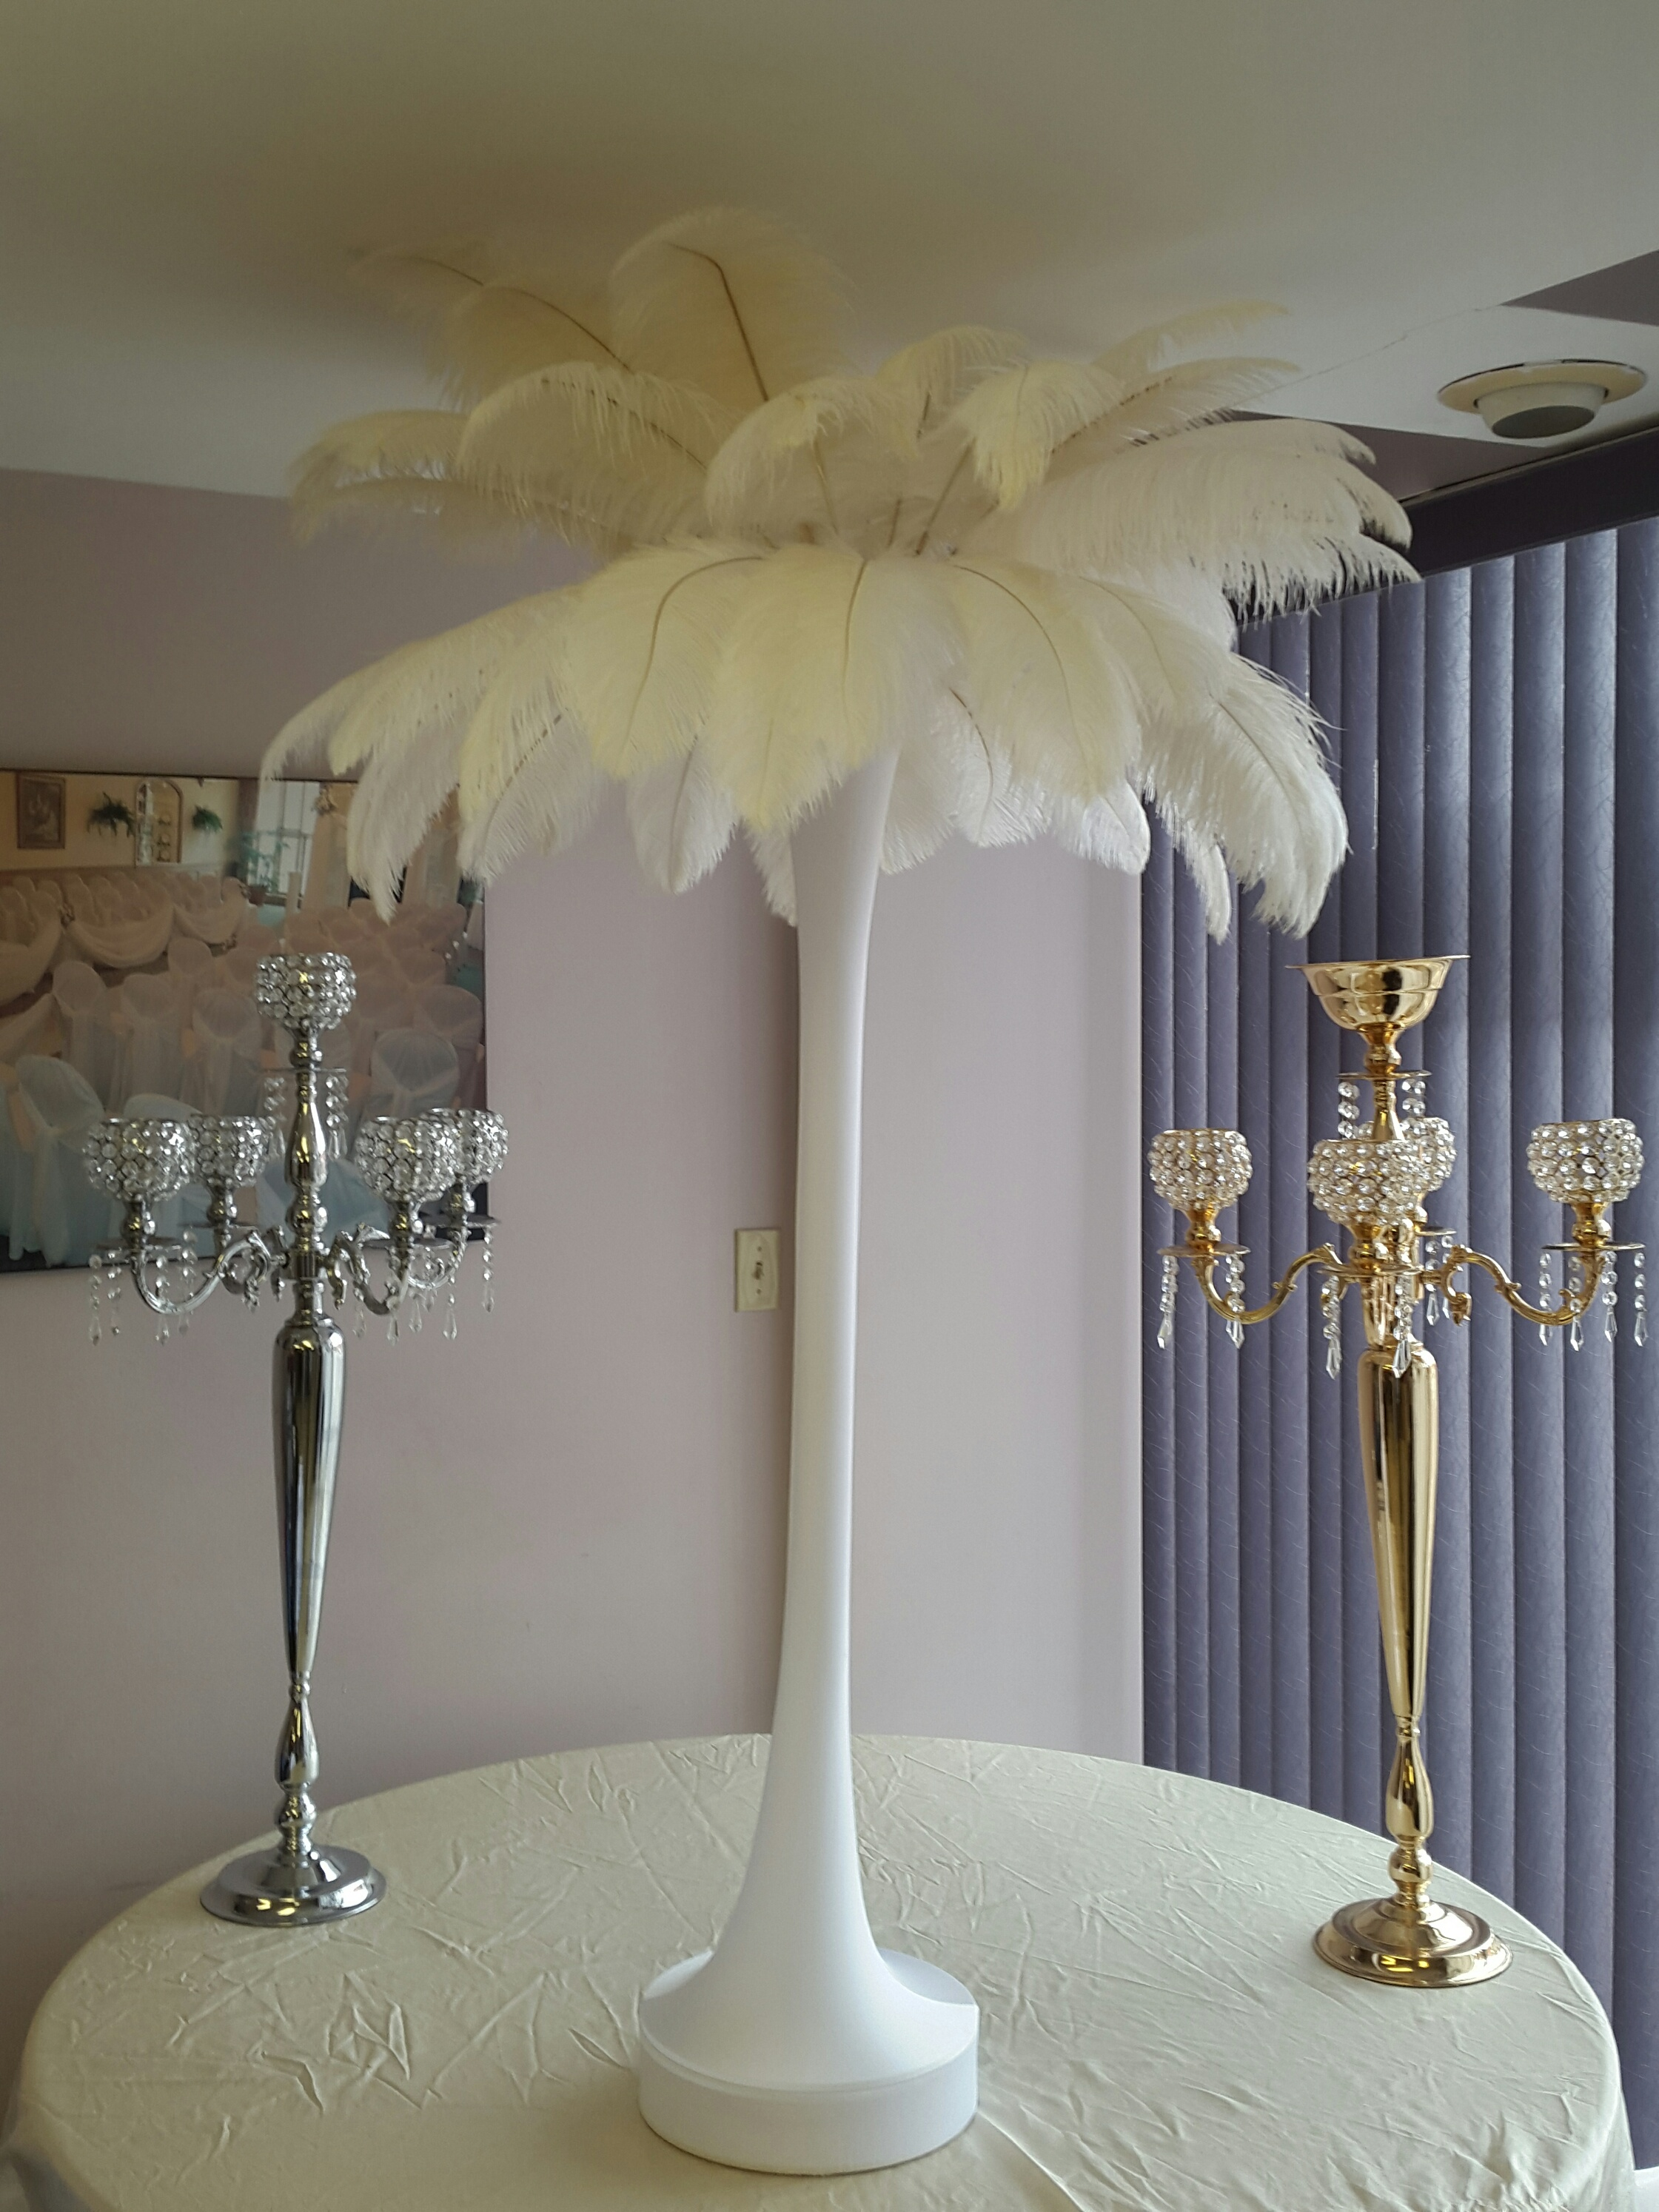 The feather guy wholesale ostrich feathers cheap toronto 48 tower 3 base 50pcs of 16 18 feathers total height 65 30 feather arrangement reviewsmspy